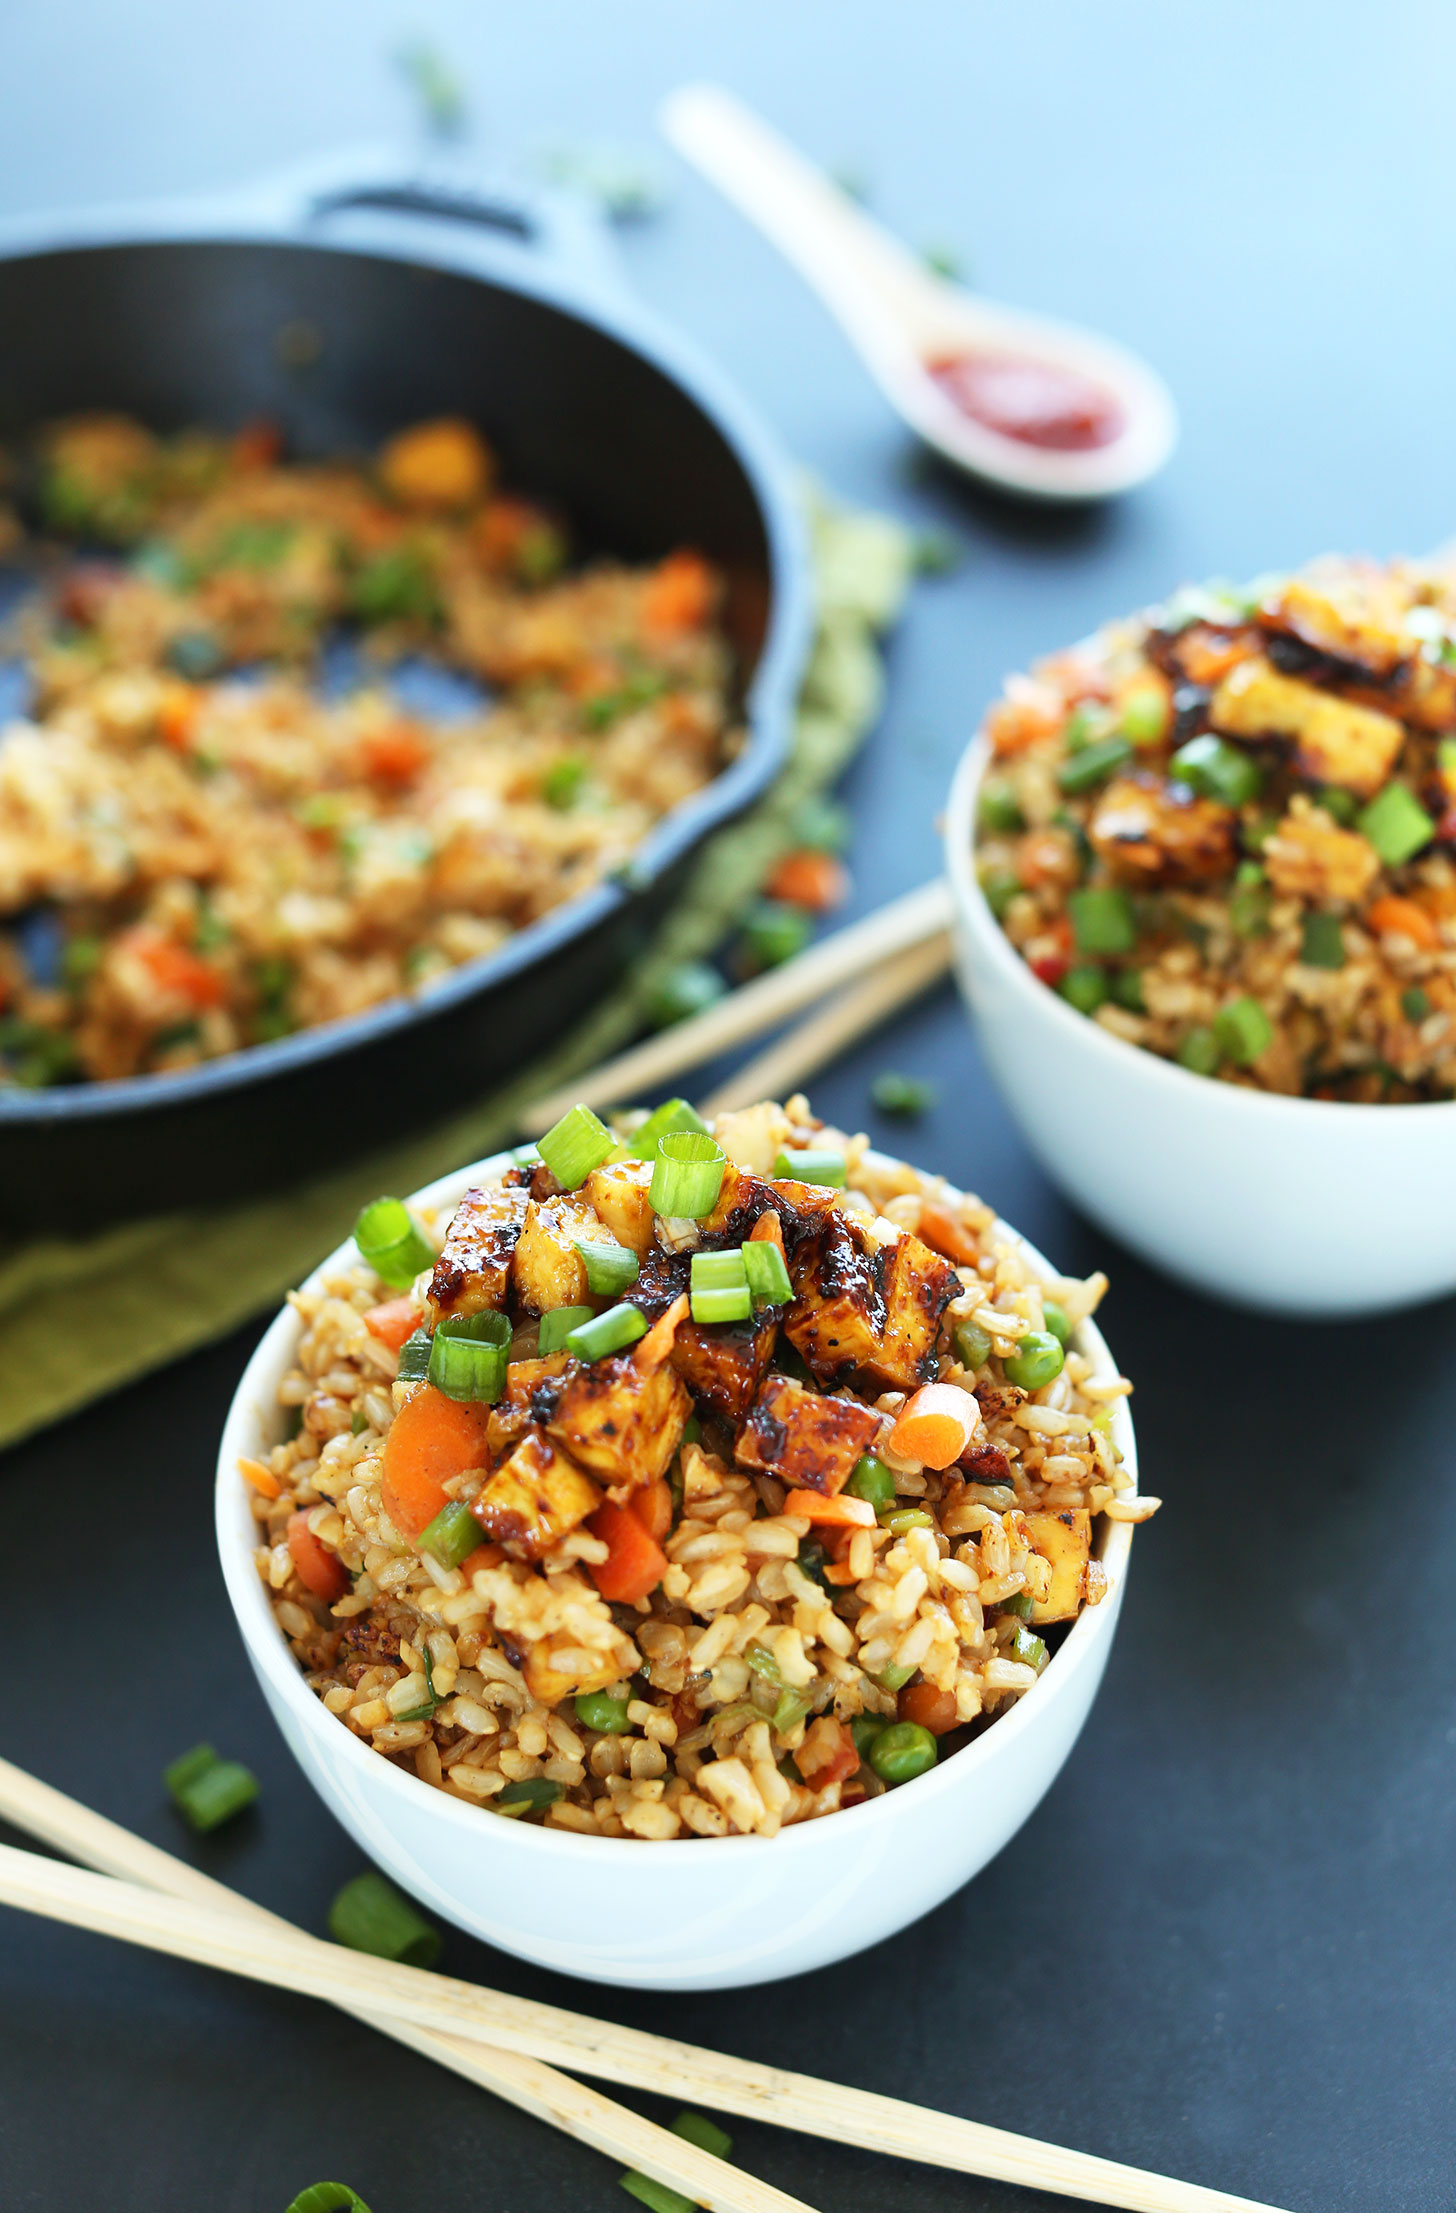 5 tofu recipes for kids: The Vegan fried rice at Minimalist Baker is a favorite of ours